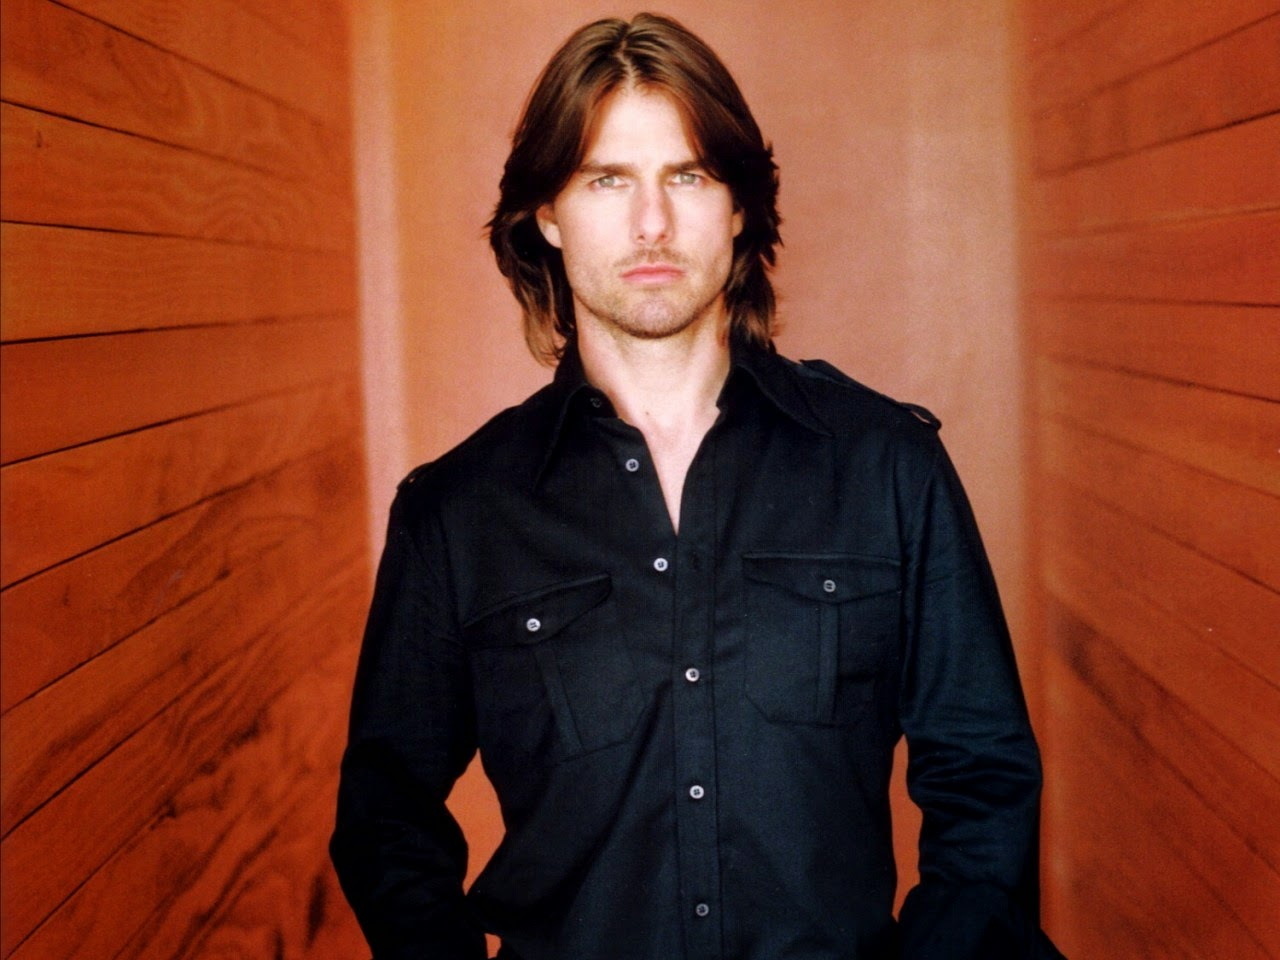 Tom Cruise HD Wallpapers - Celebrities HD Wallpapers